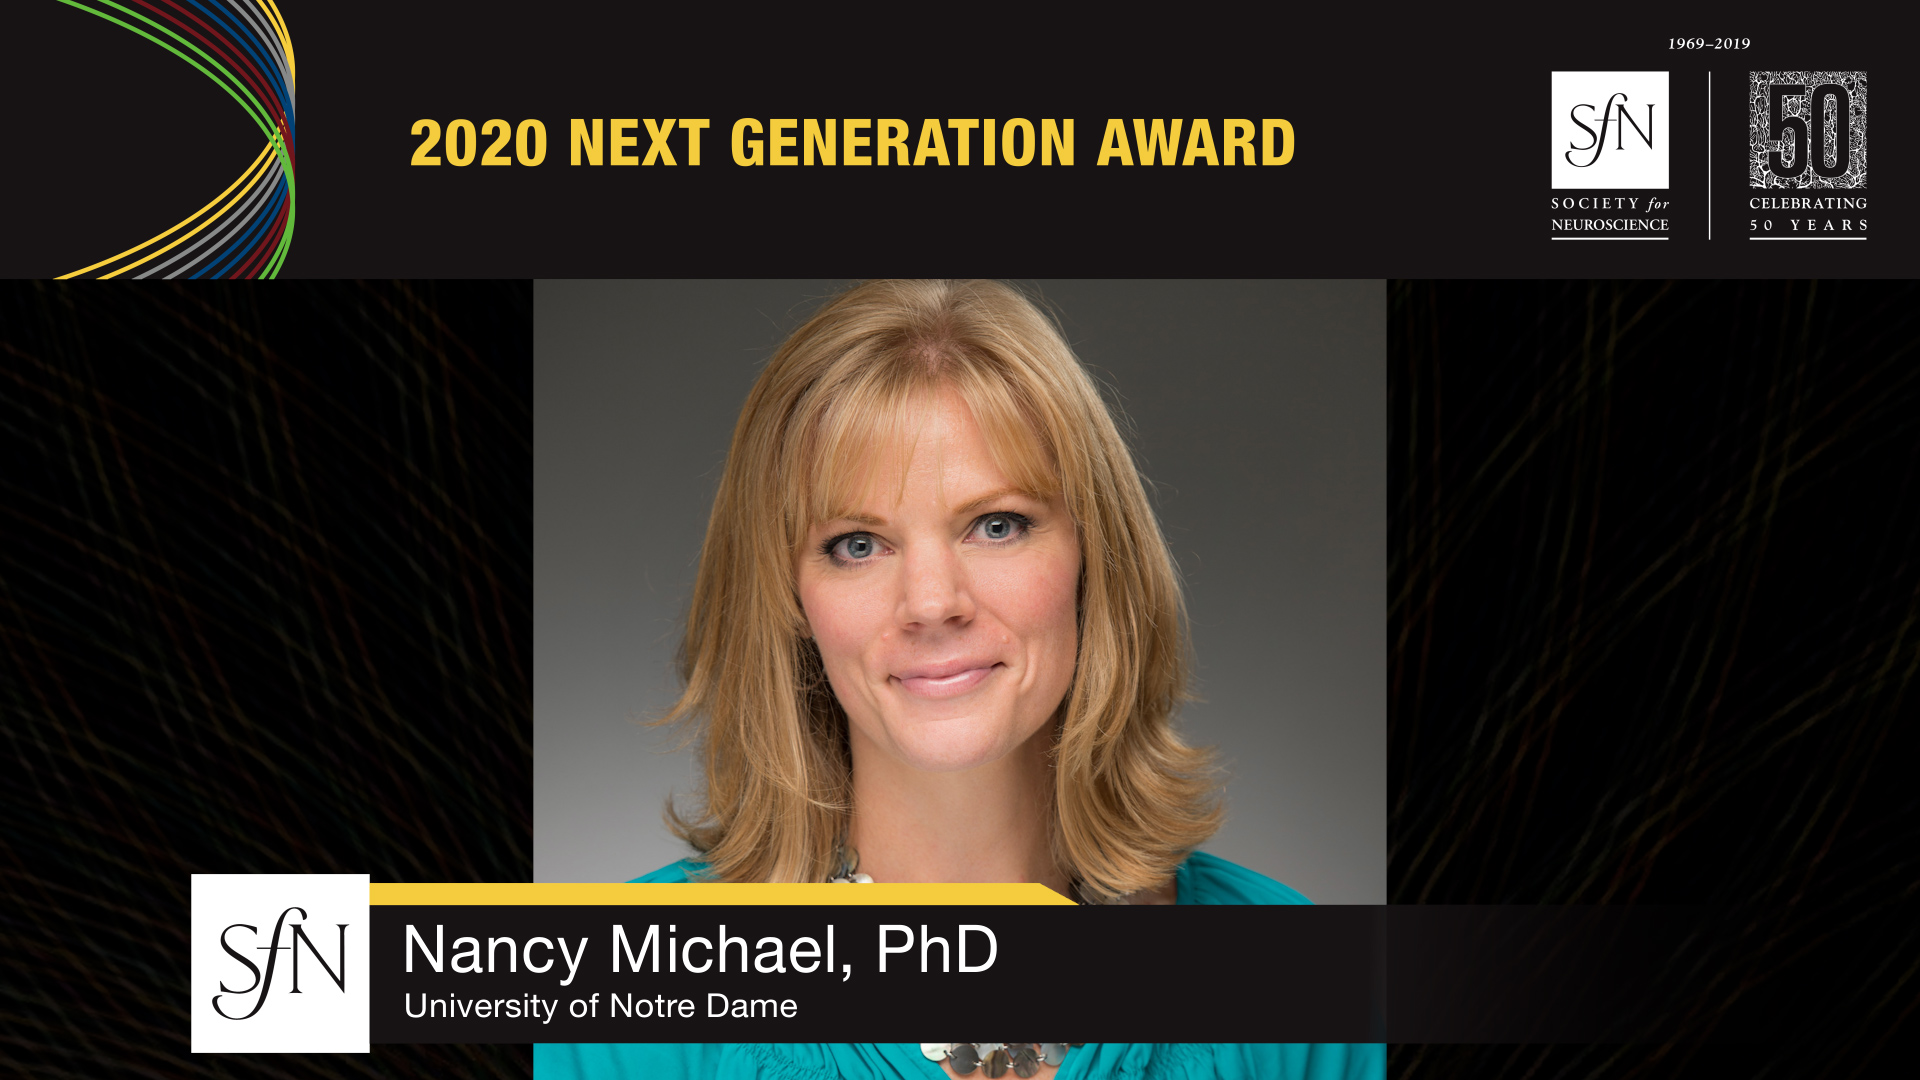 2020 Next Generation Award Winner graphic, image of Nancy Michael, PhD University of Notre Dame